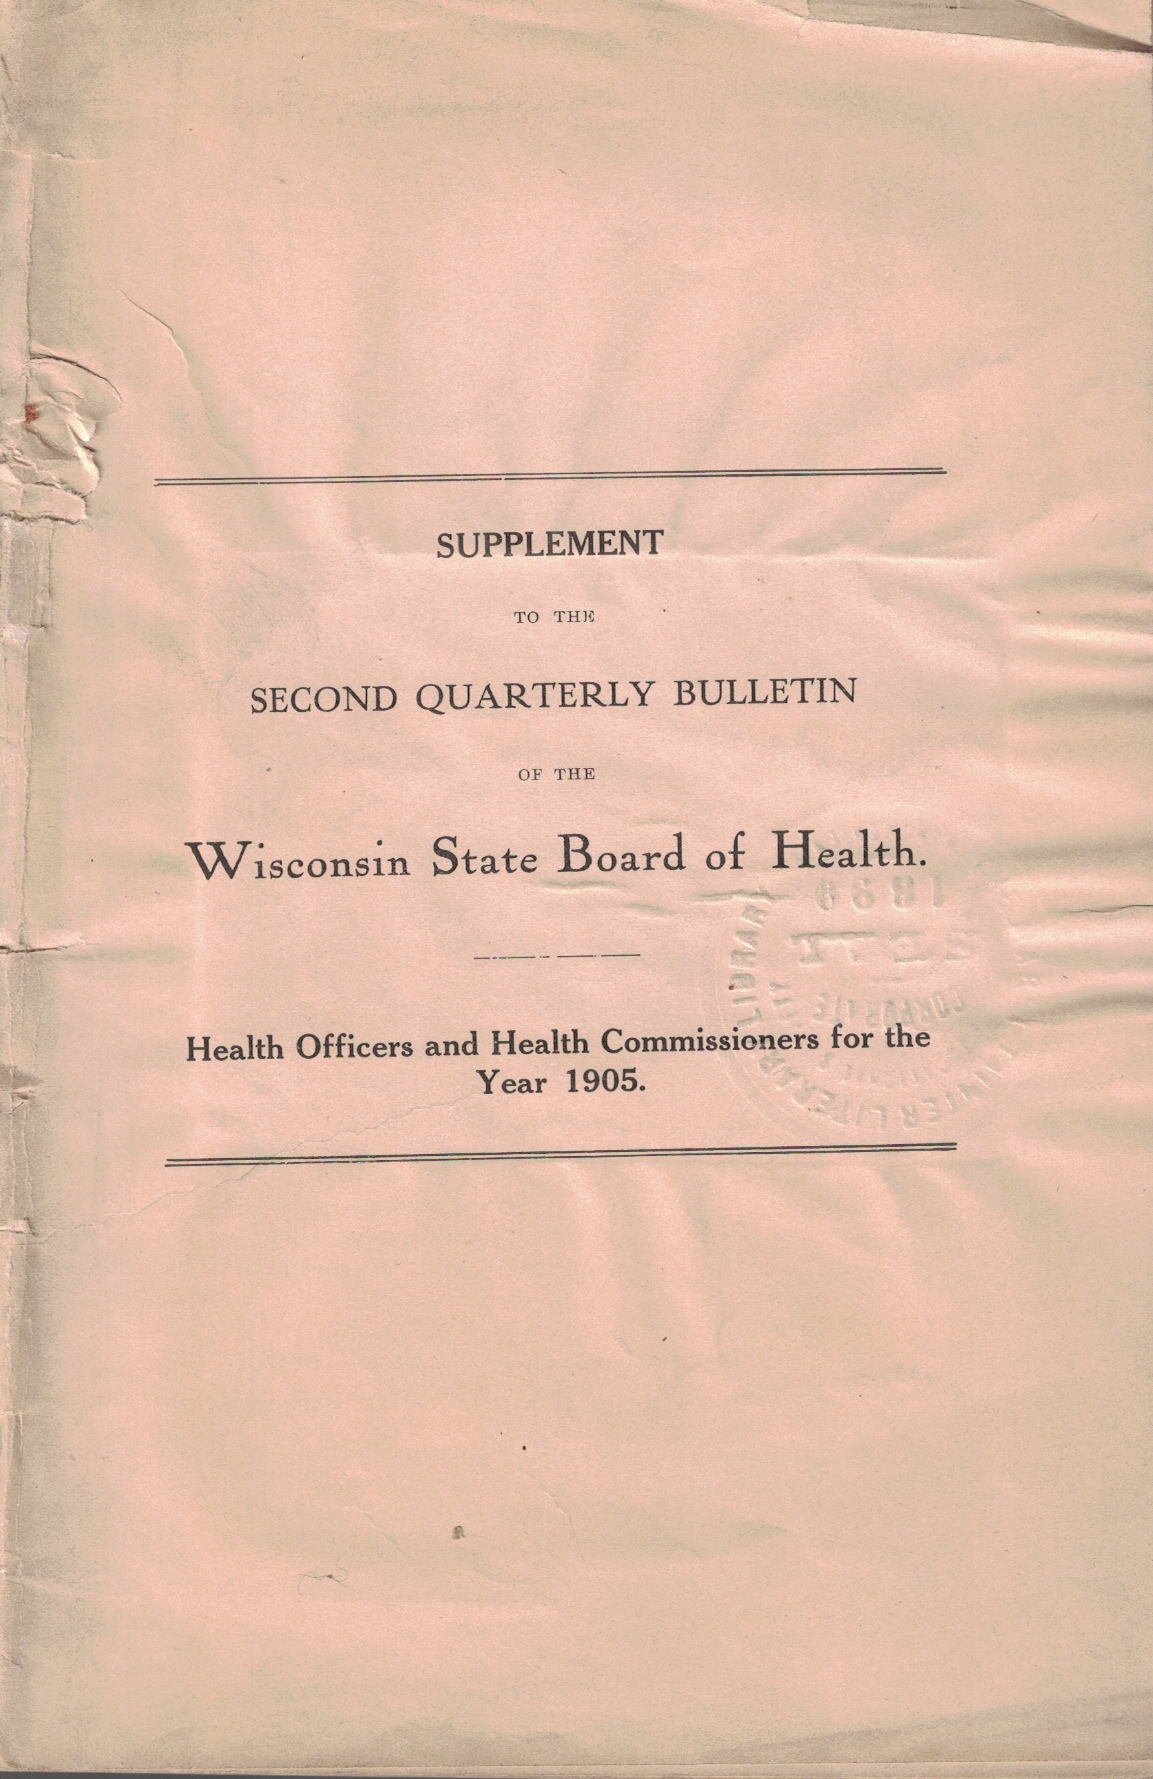 Image for Supplement to the Second Quarterly Bulletin of the Wisconsin State Board of Health: Health Officers and Health Commissioners for the Year 1905